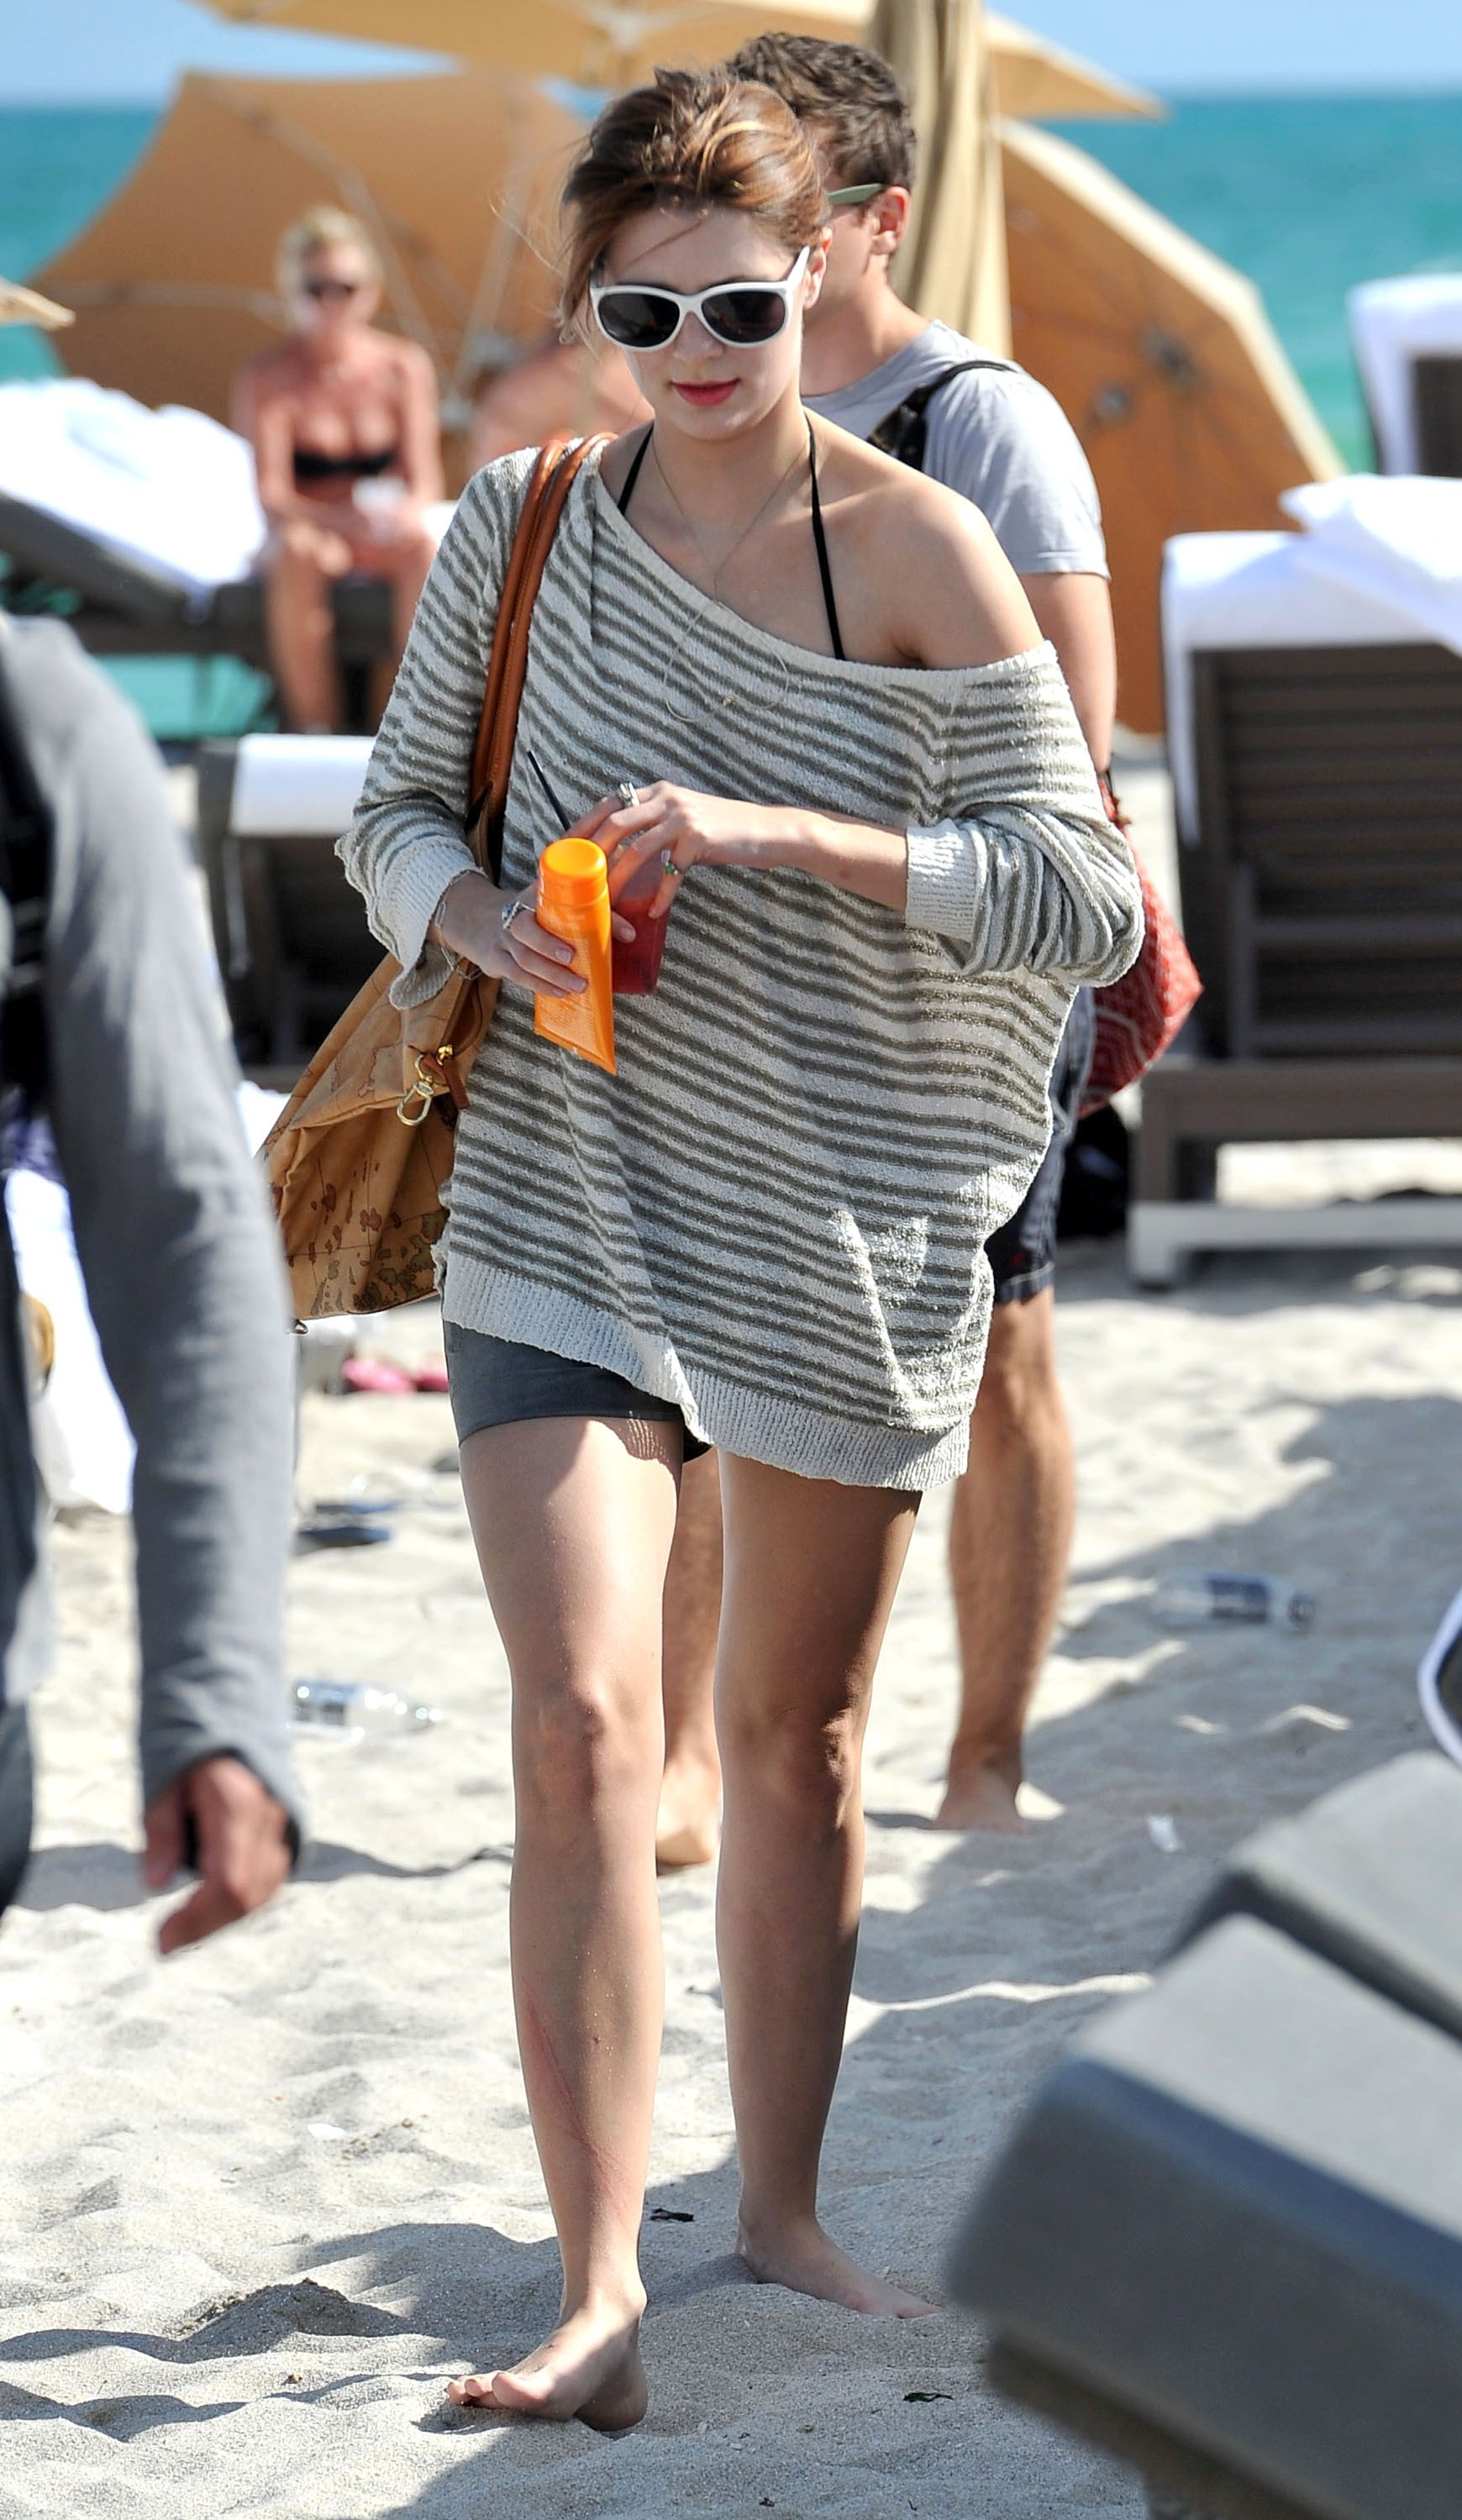 311862784_Mischa_Barton_Bikini_Candids_on_the_Beach_in_Miami_December_27_2011_121_122_248lo.jpg